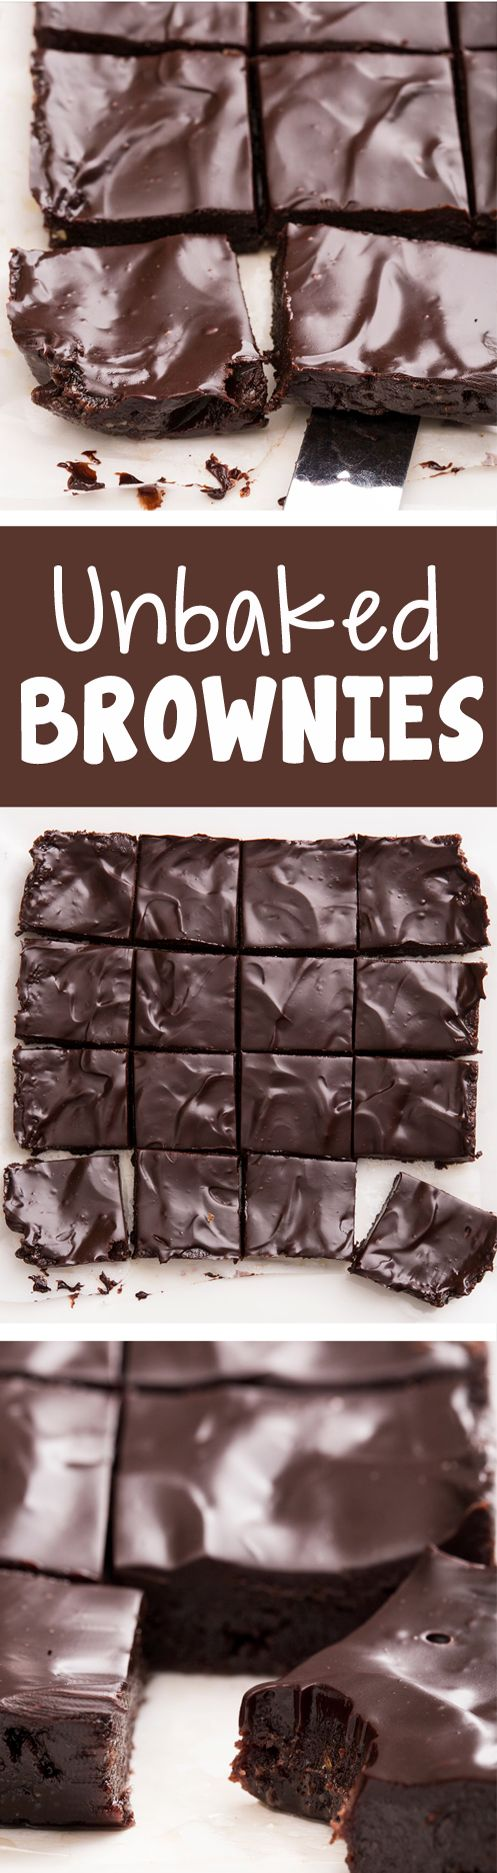 These secretly healthy brownies are a MUST try!